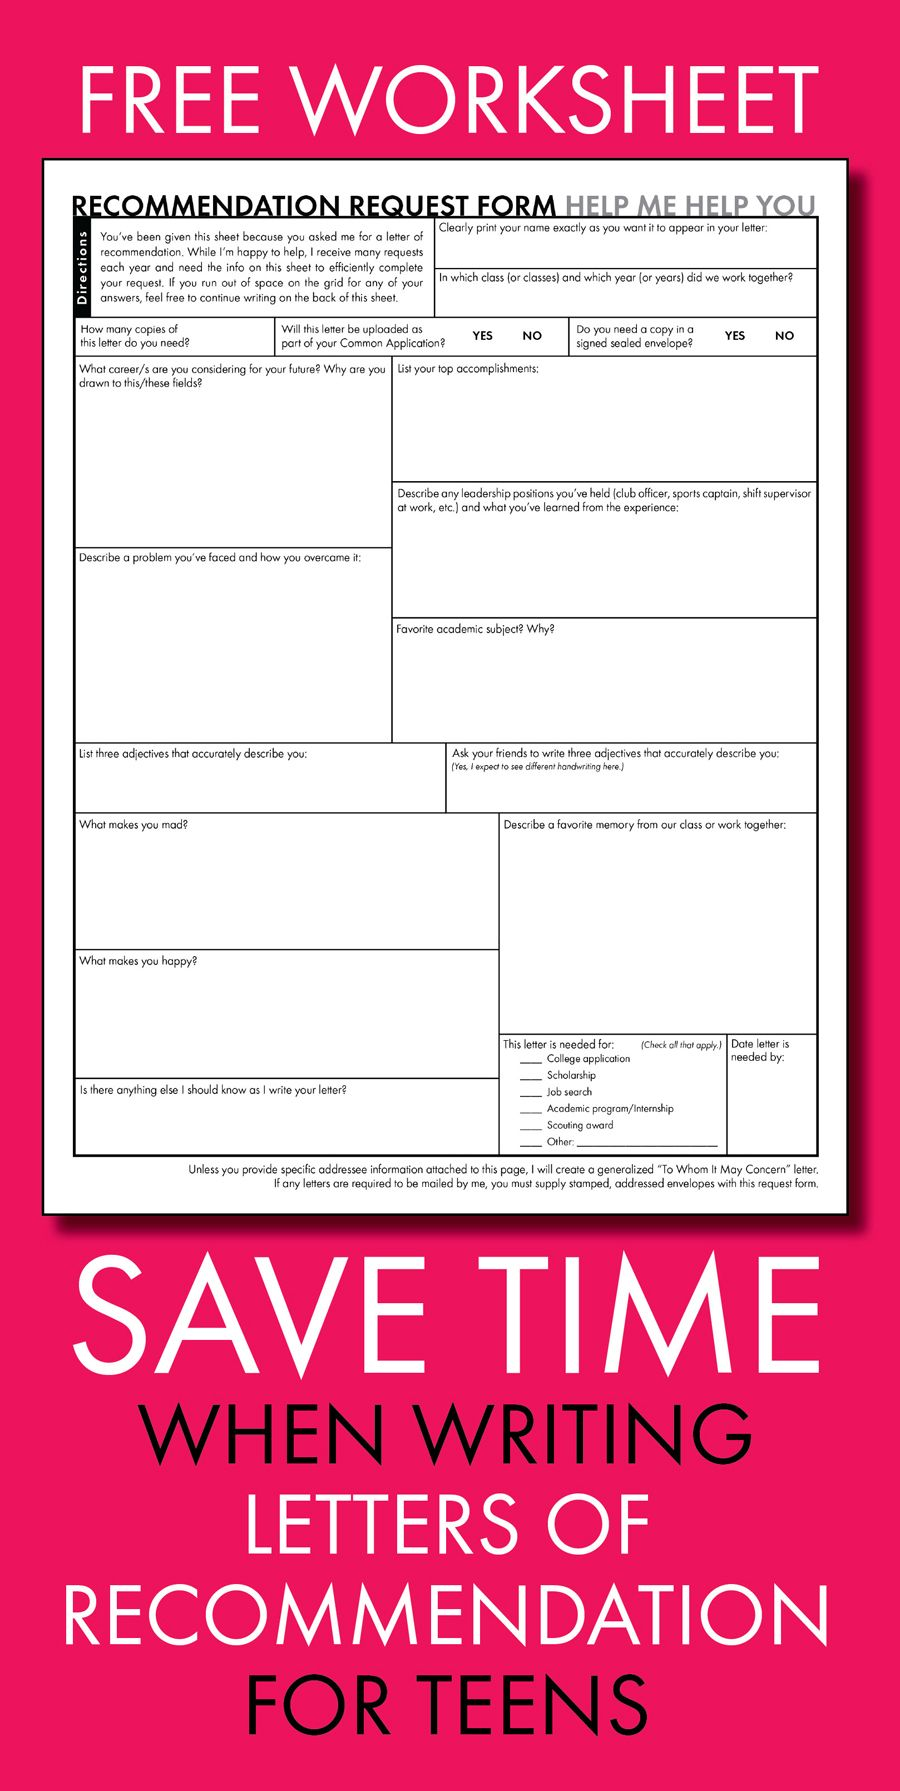 free worksheet to save time when writing letters of recommendation for high school students highschool